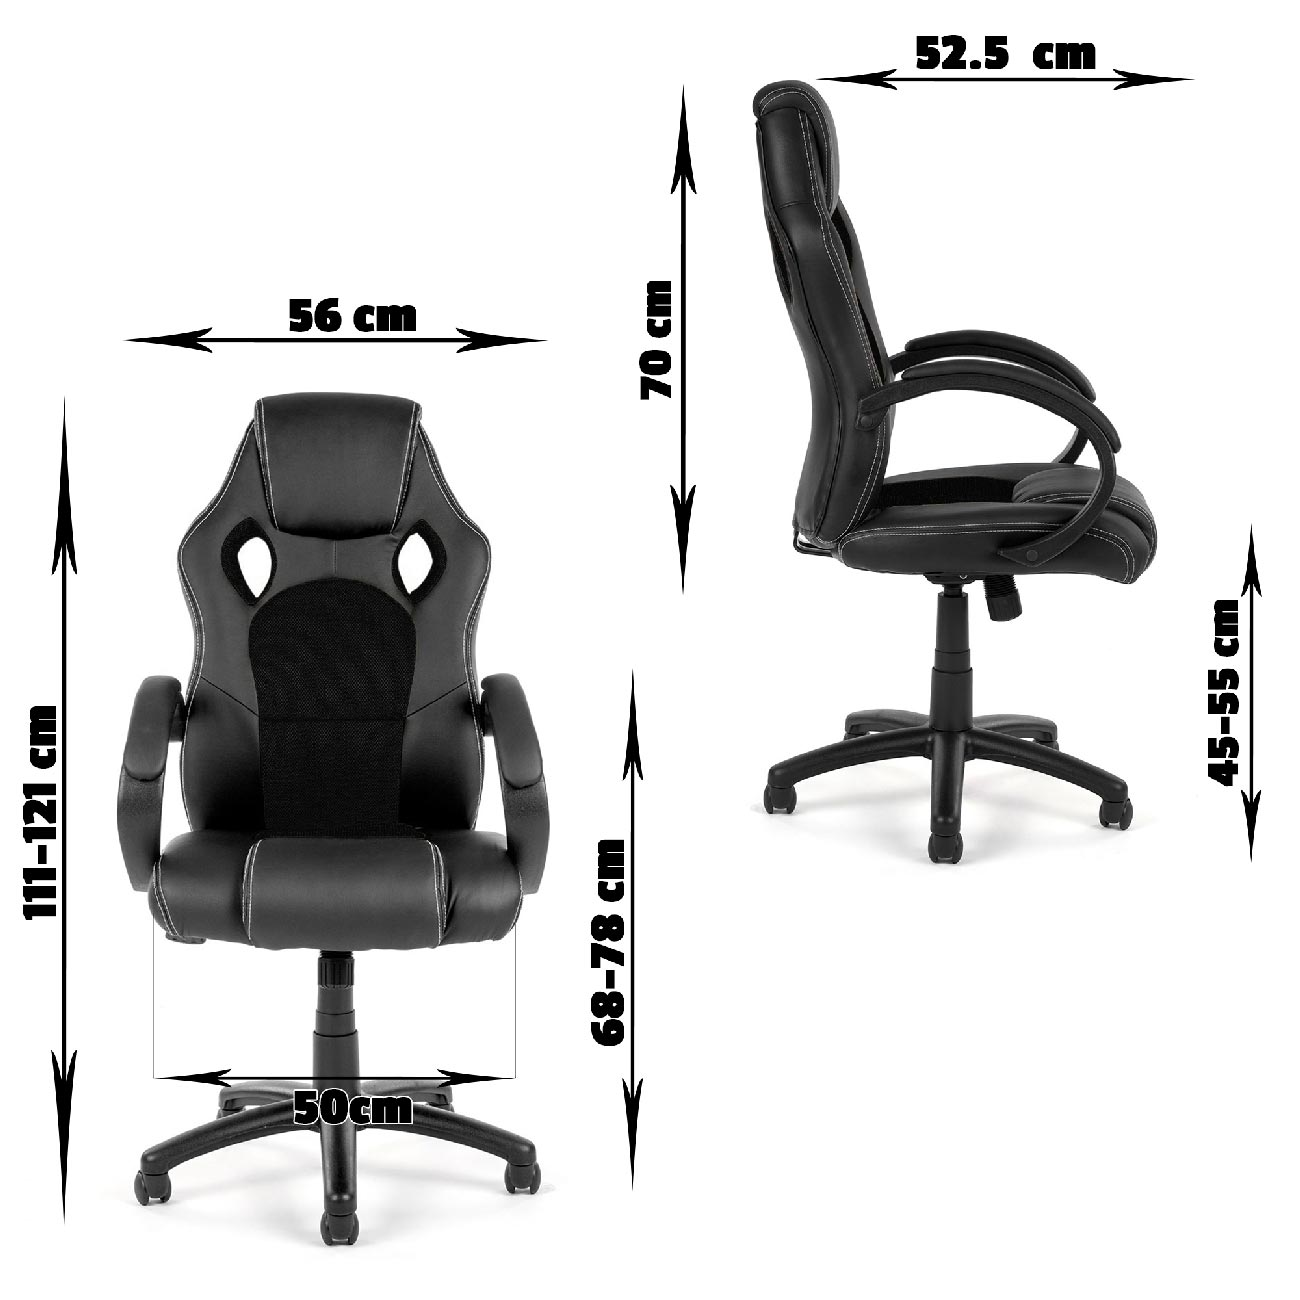 chaise bureau fauteuil si ge racing gamer sportiv ordinateur accoudoir noir v8 d ebay. Black Bedroom Furniture Sets. Home Design Ideas